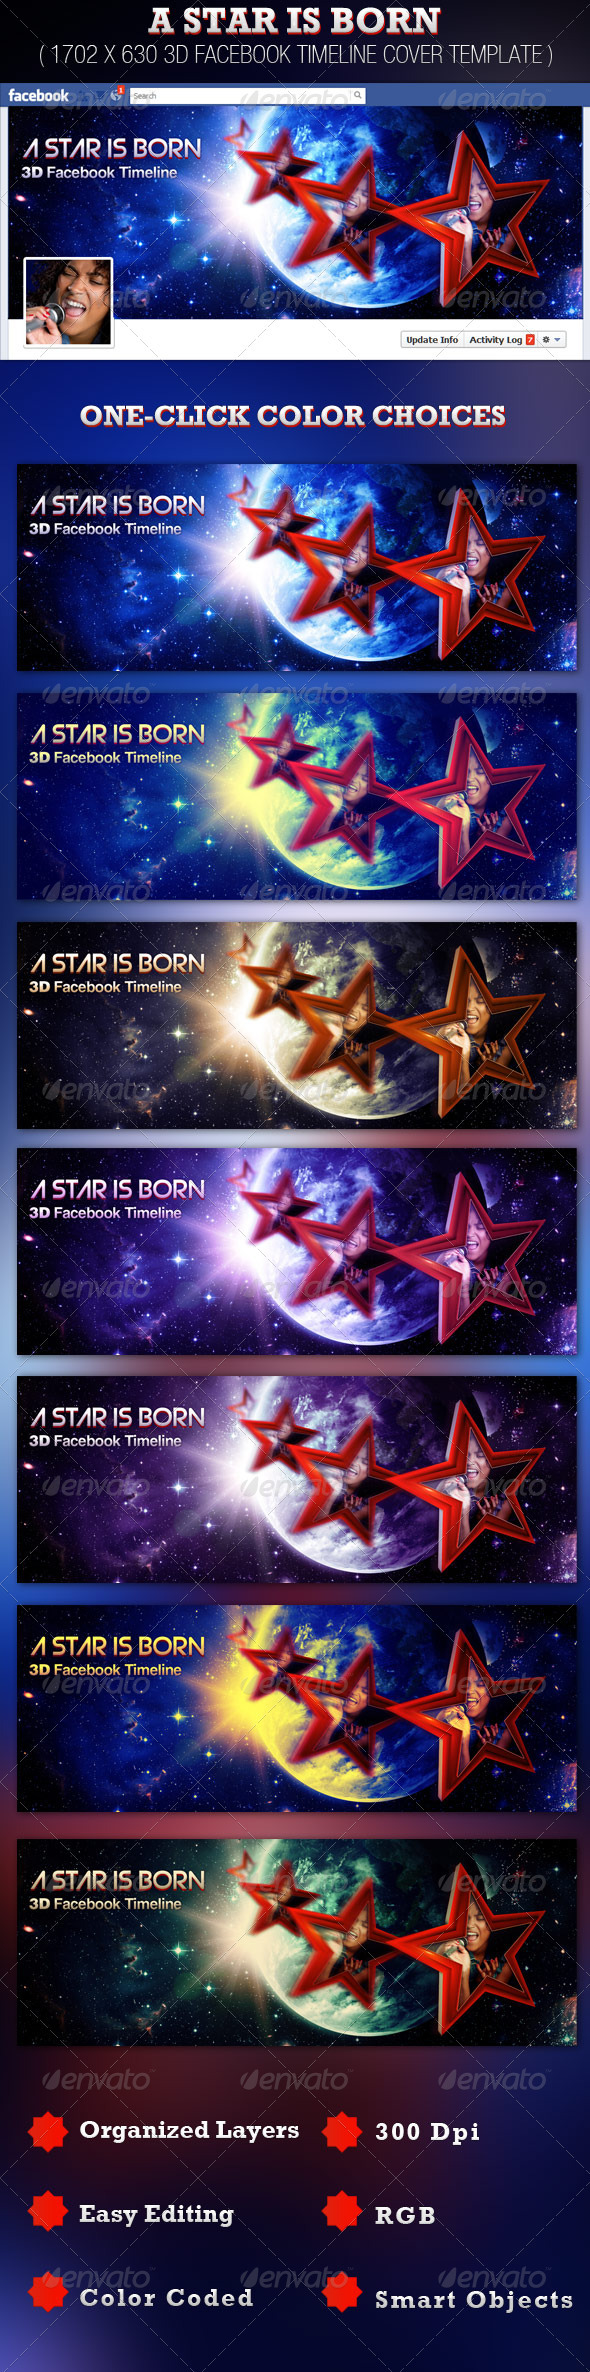 A Star is Born 3D Facebook Timeline Template - Facebook Timeline Covers Social Media